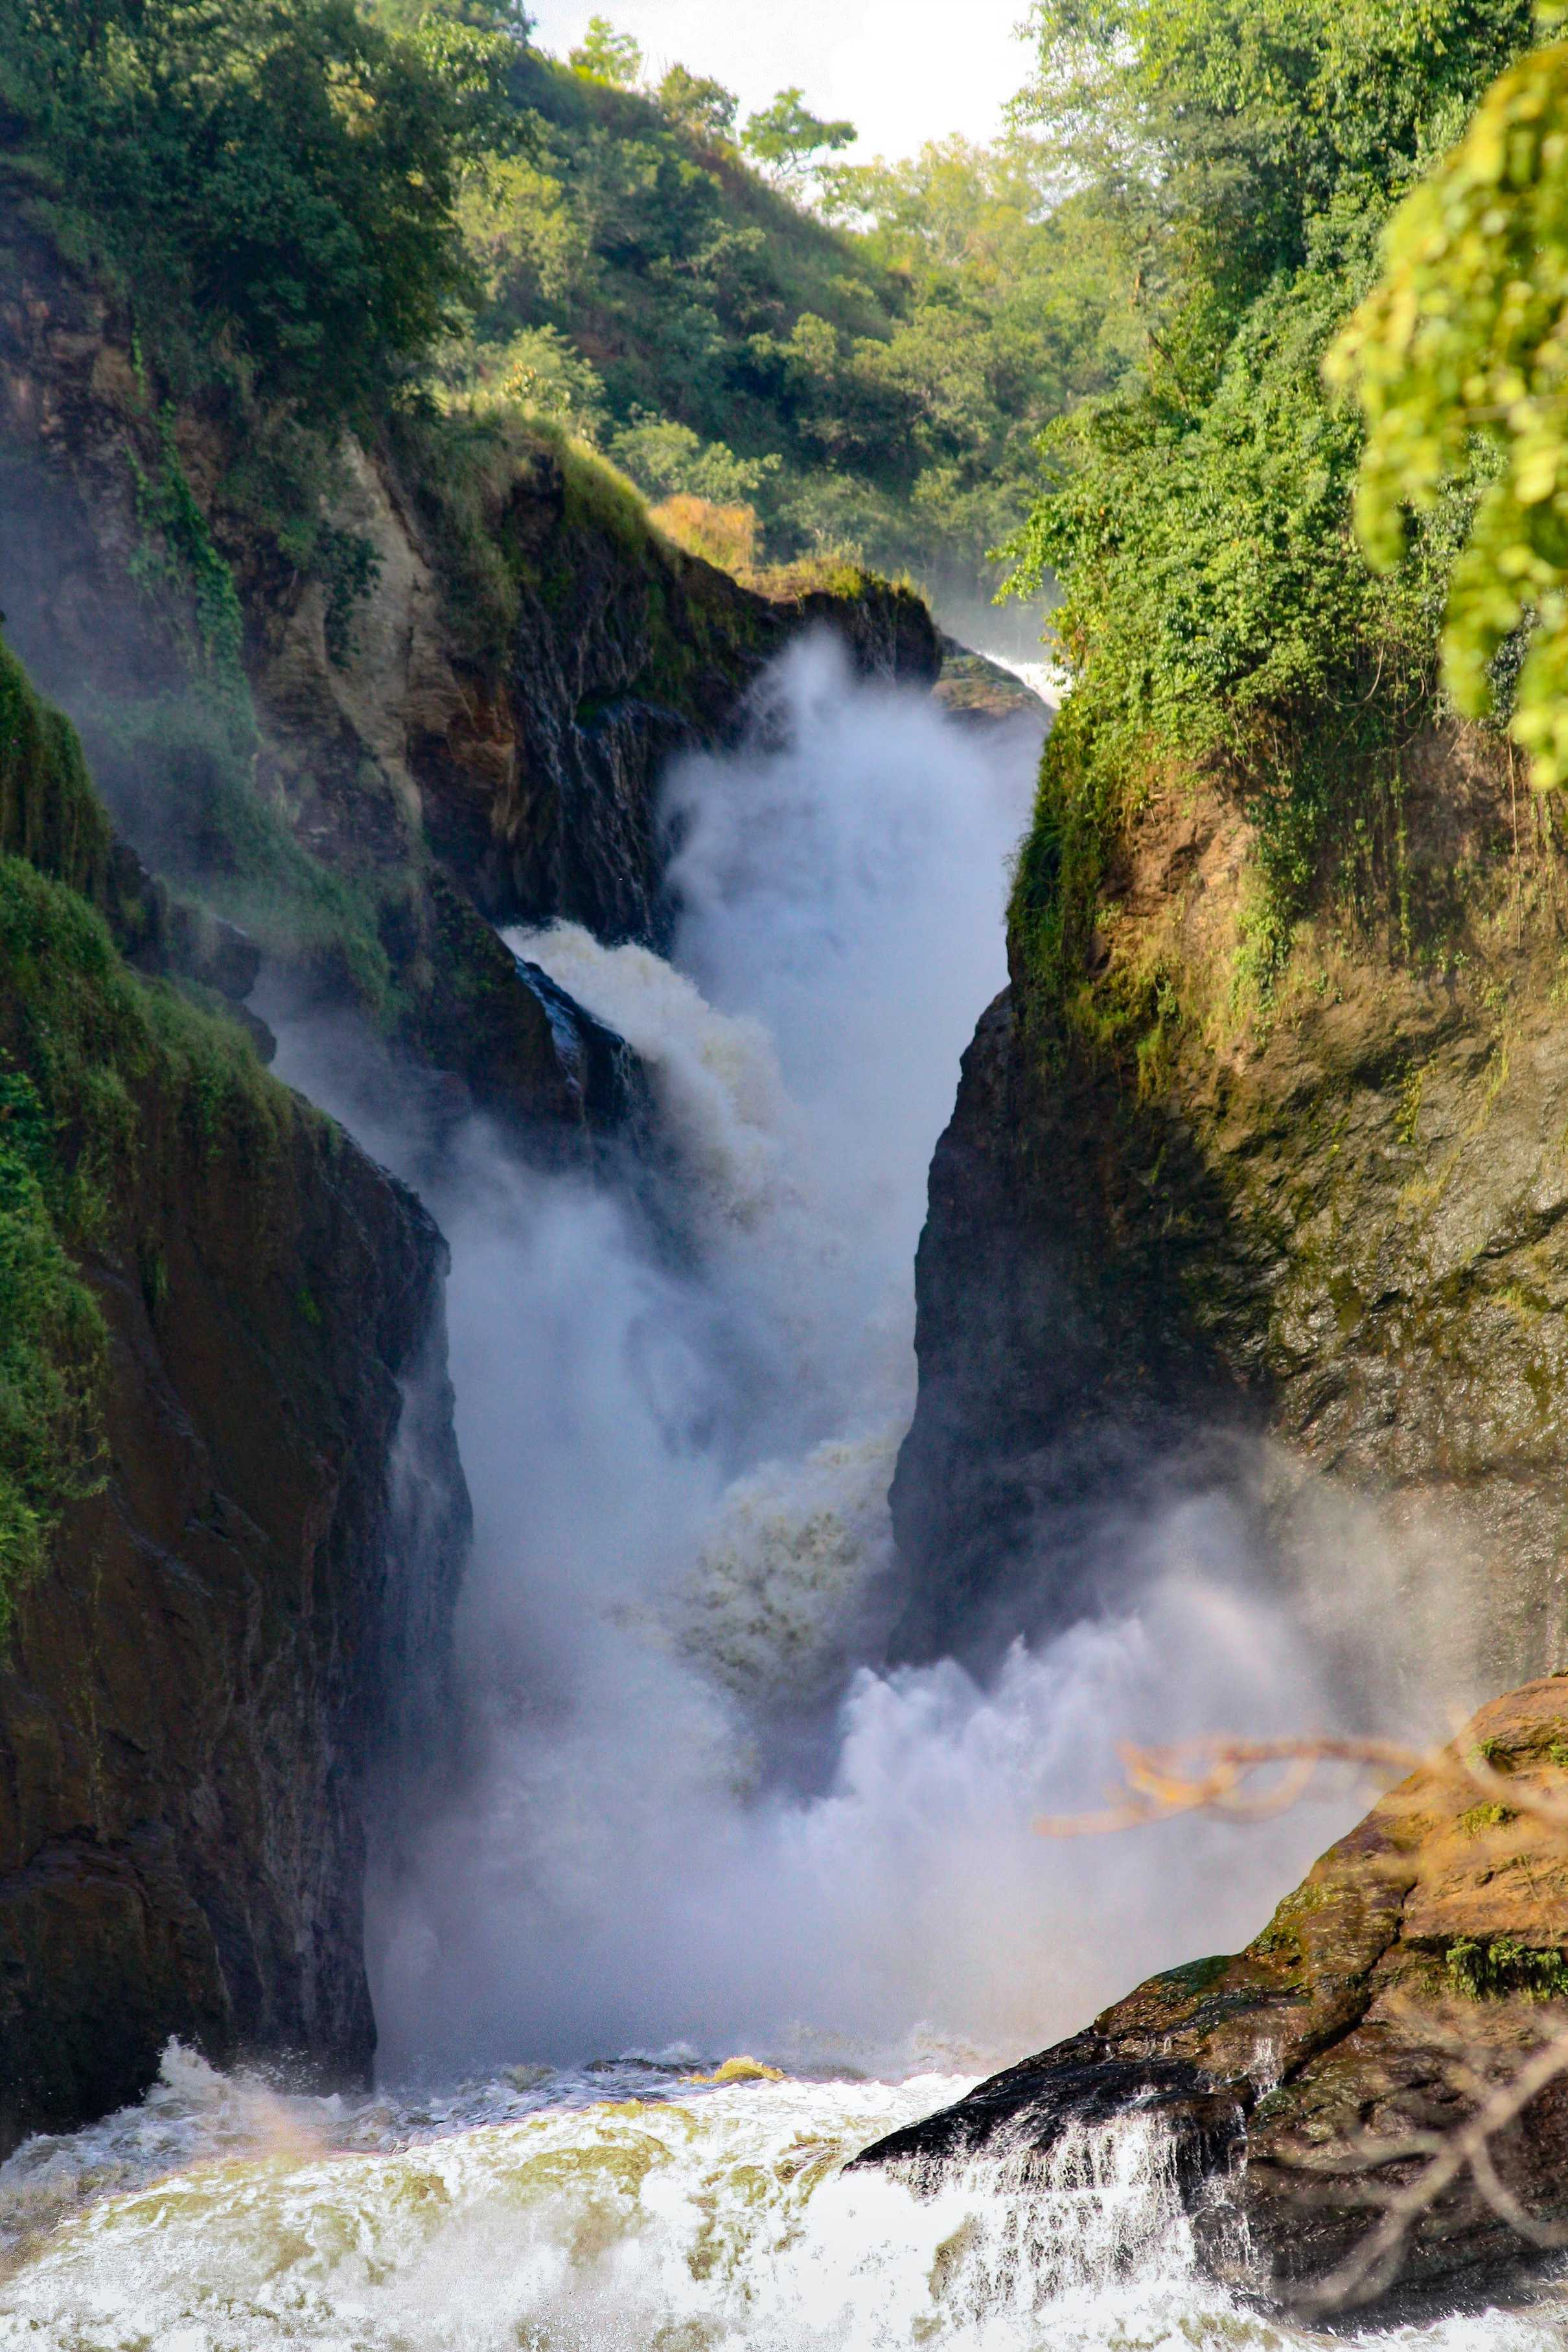 Below the gorge: Murchison Falls